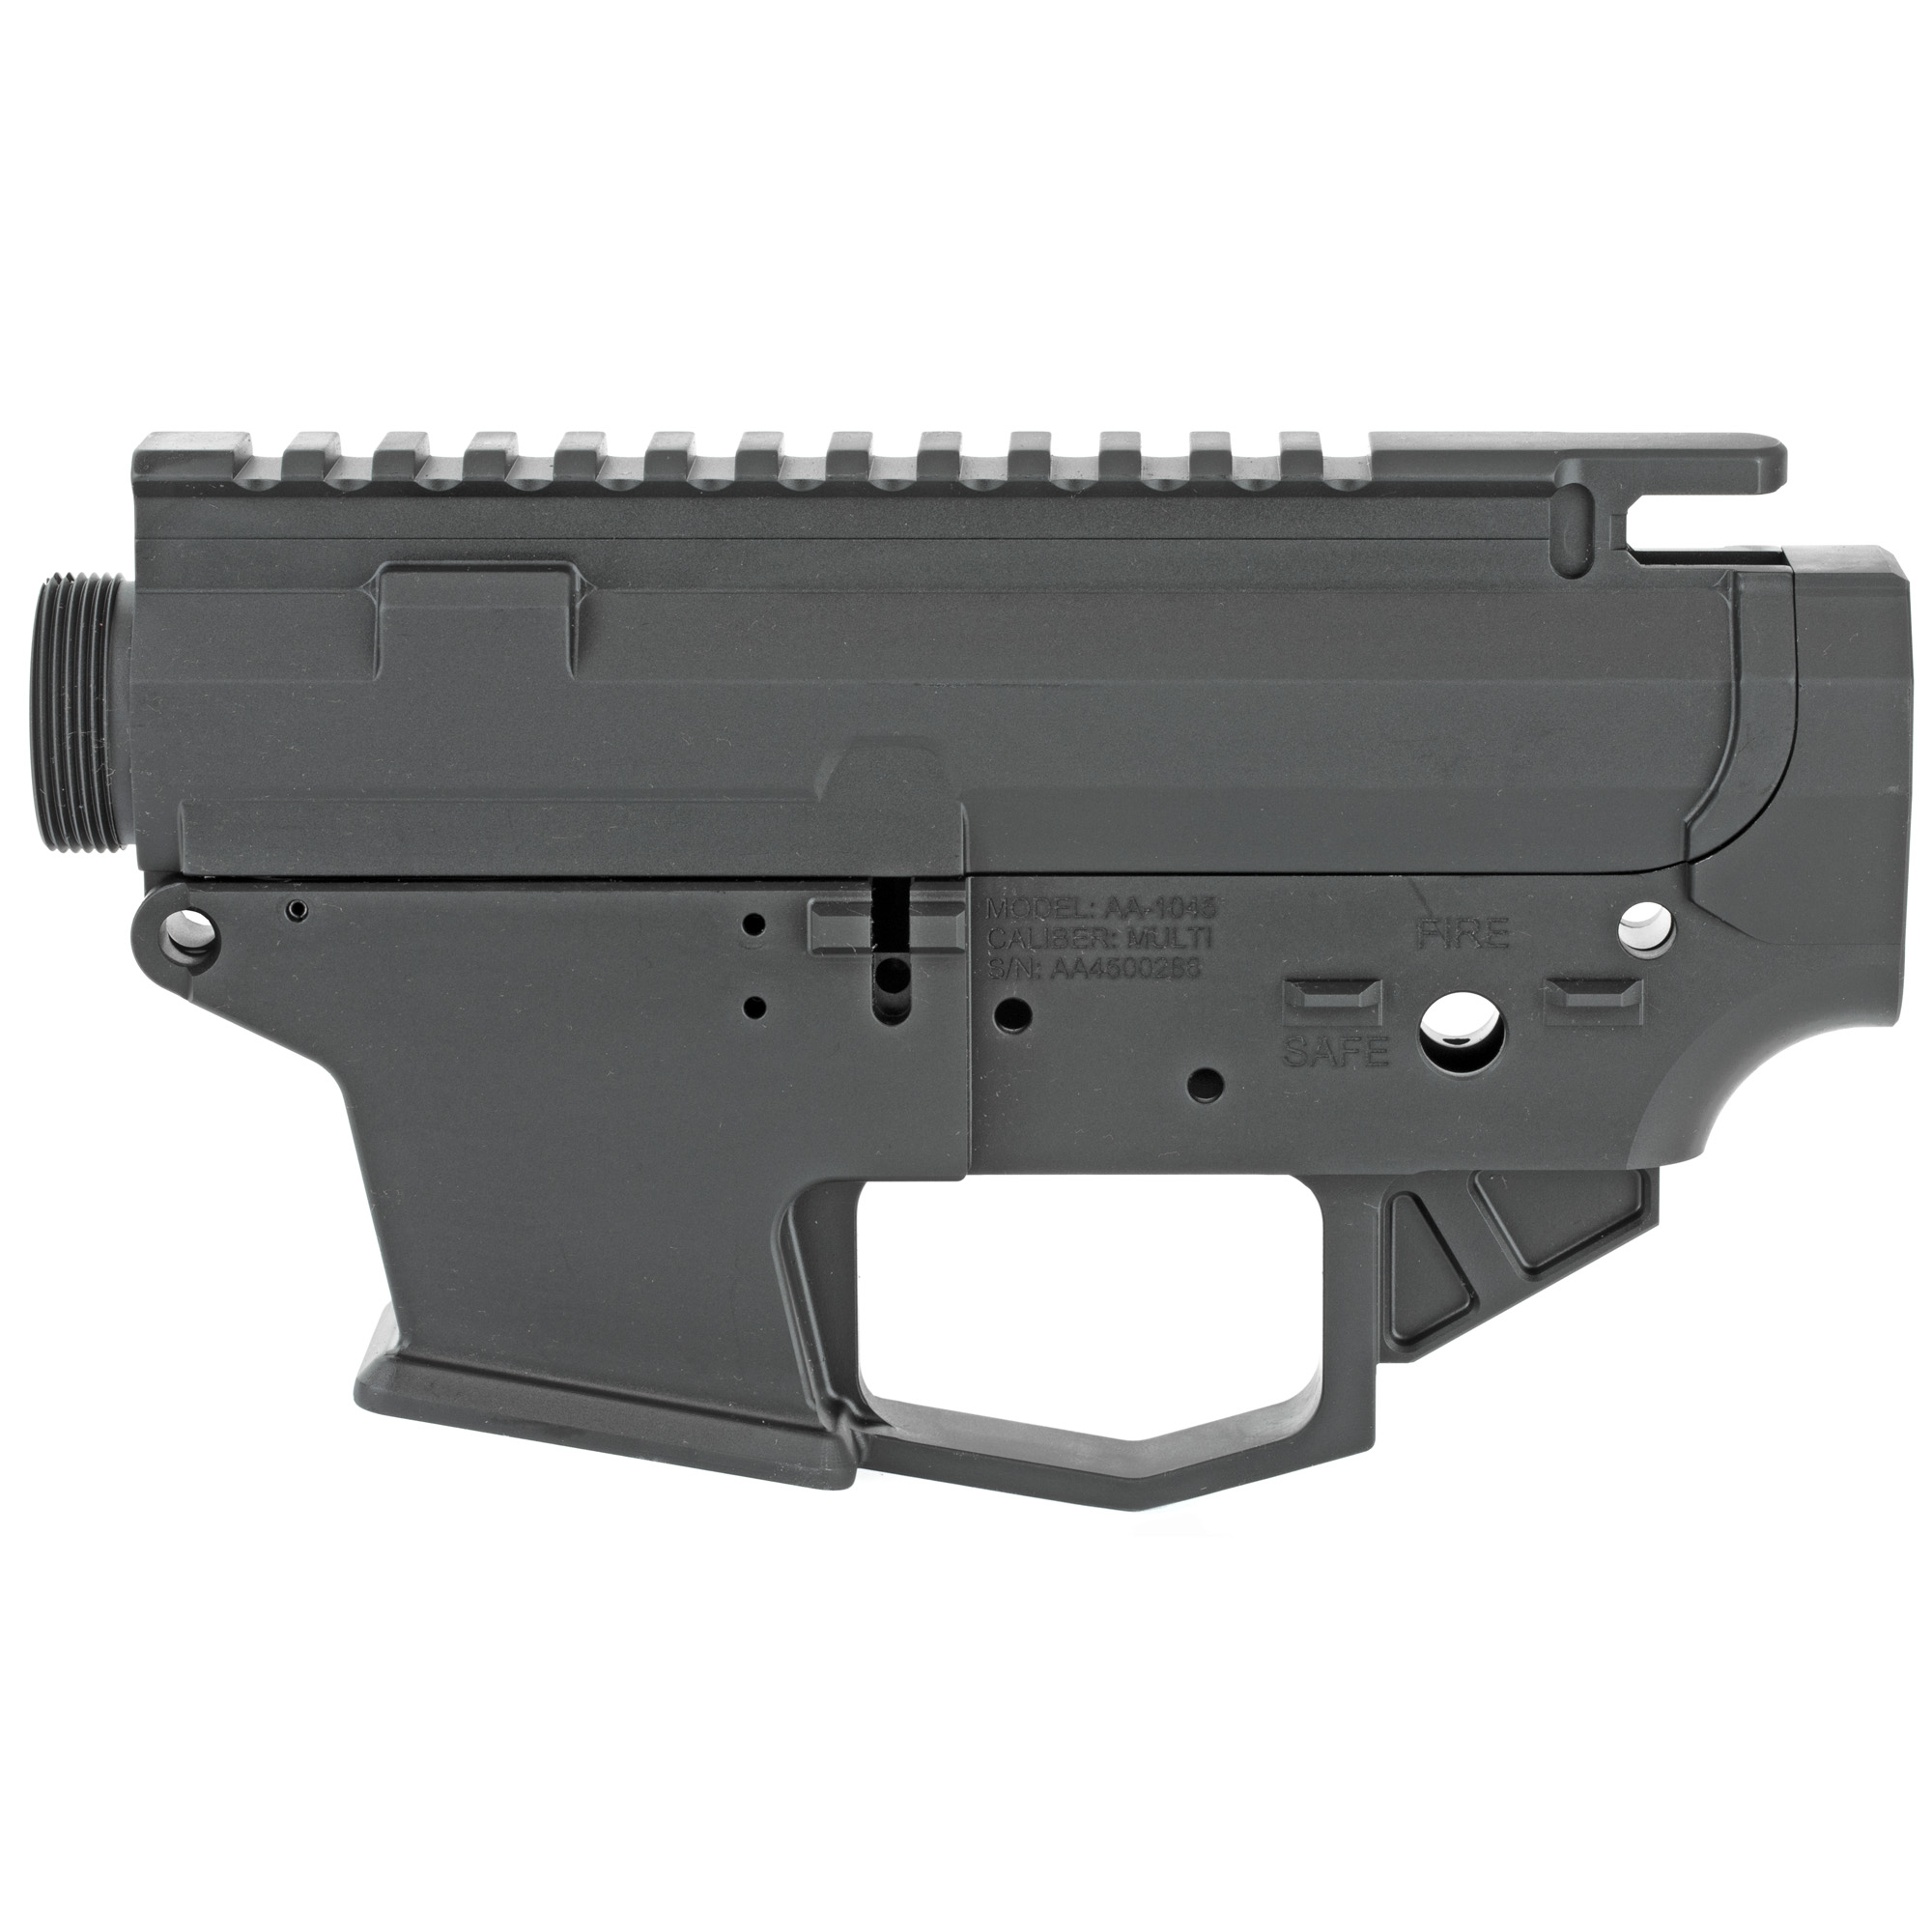 """The Angstadt Arms 1045 matched receiver set is the foundation for a quality pistol caliber AR-15. Machined from a solid block of 7075-T6 billet aluminum"""" the 1045 receiver is compatible with 45ACP and 10mm GLOCK magazines. Featuring standard AR-15 controls and accepting most aftermarket components"""" the 1045 is instantly familiar to anyone experienced with the AR-15/M4 platform. To aid in reloads"""" the receiver features a flared magazine well and last round bolt hold open design which locks the bolt open on an empty magazine. The slick side upper receiver features an appropriately sized ejection port and no forward assist. The receiver set can be completed with standard mil-spec components."""